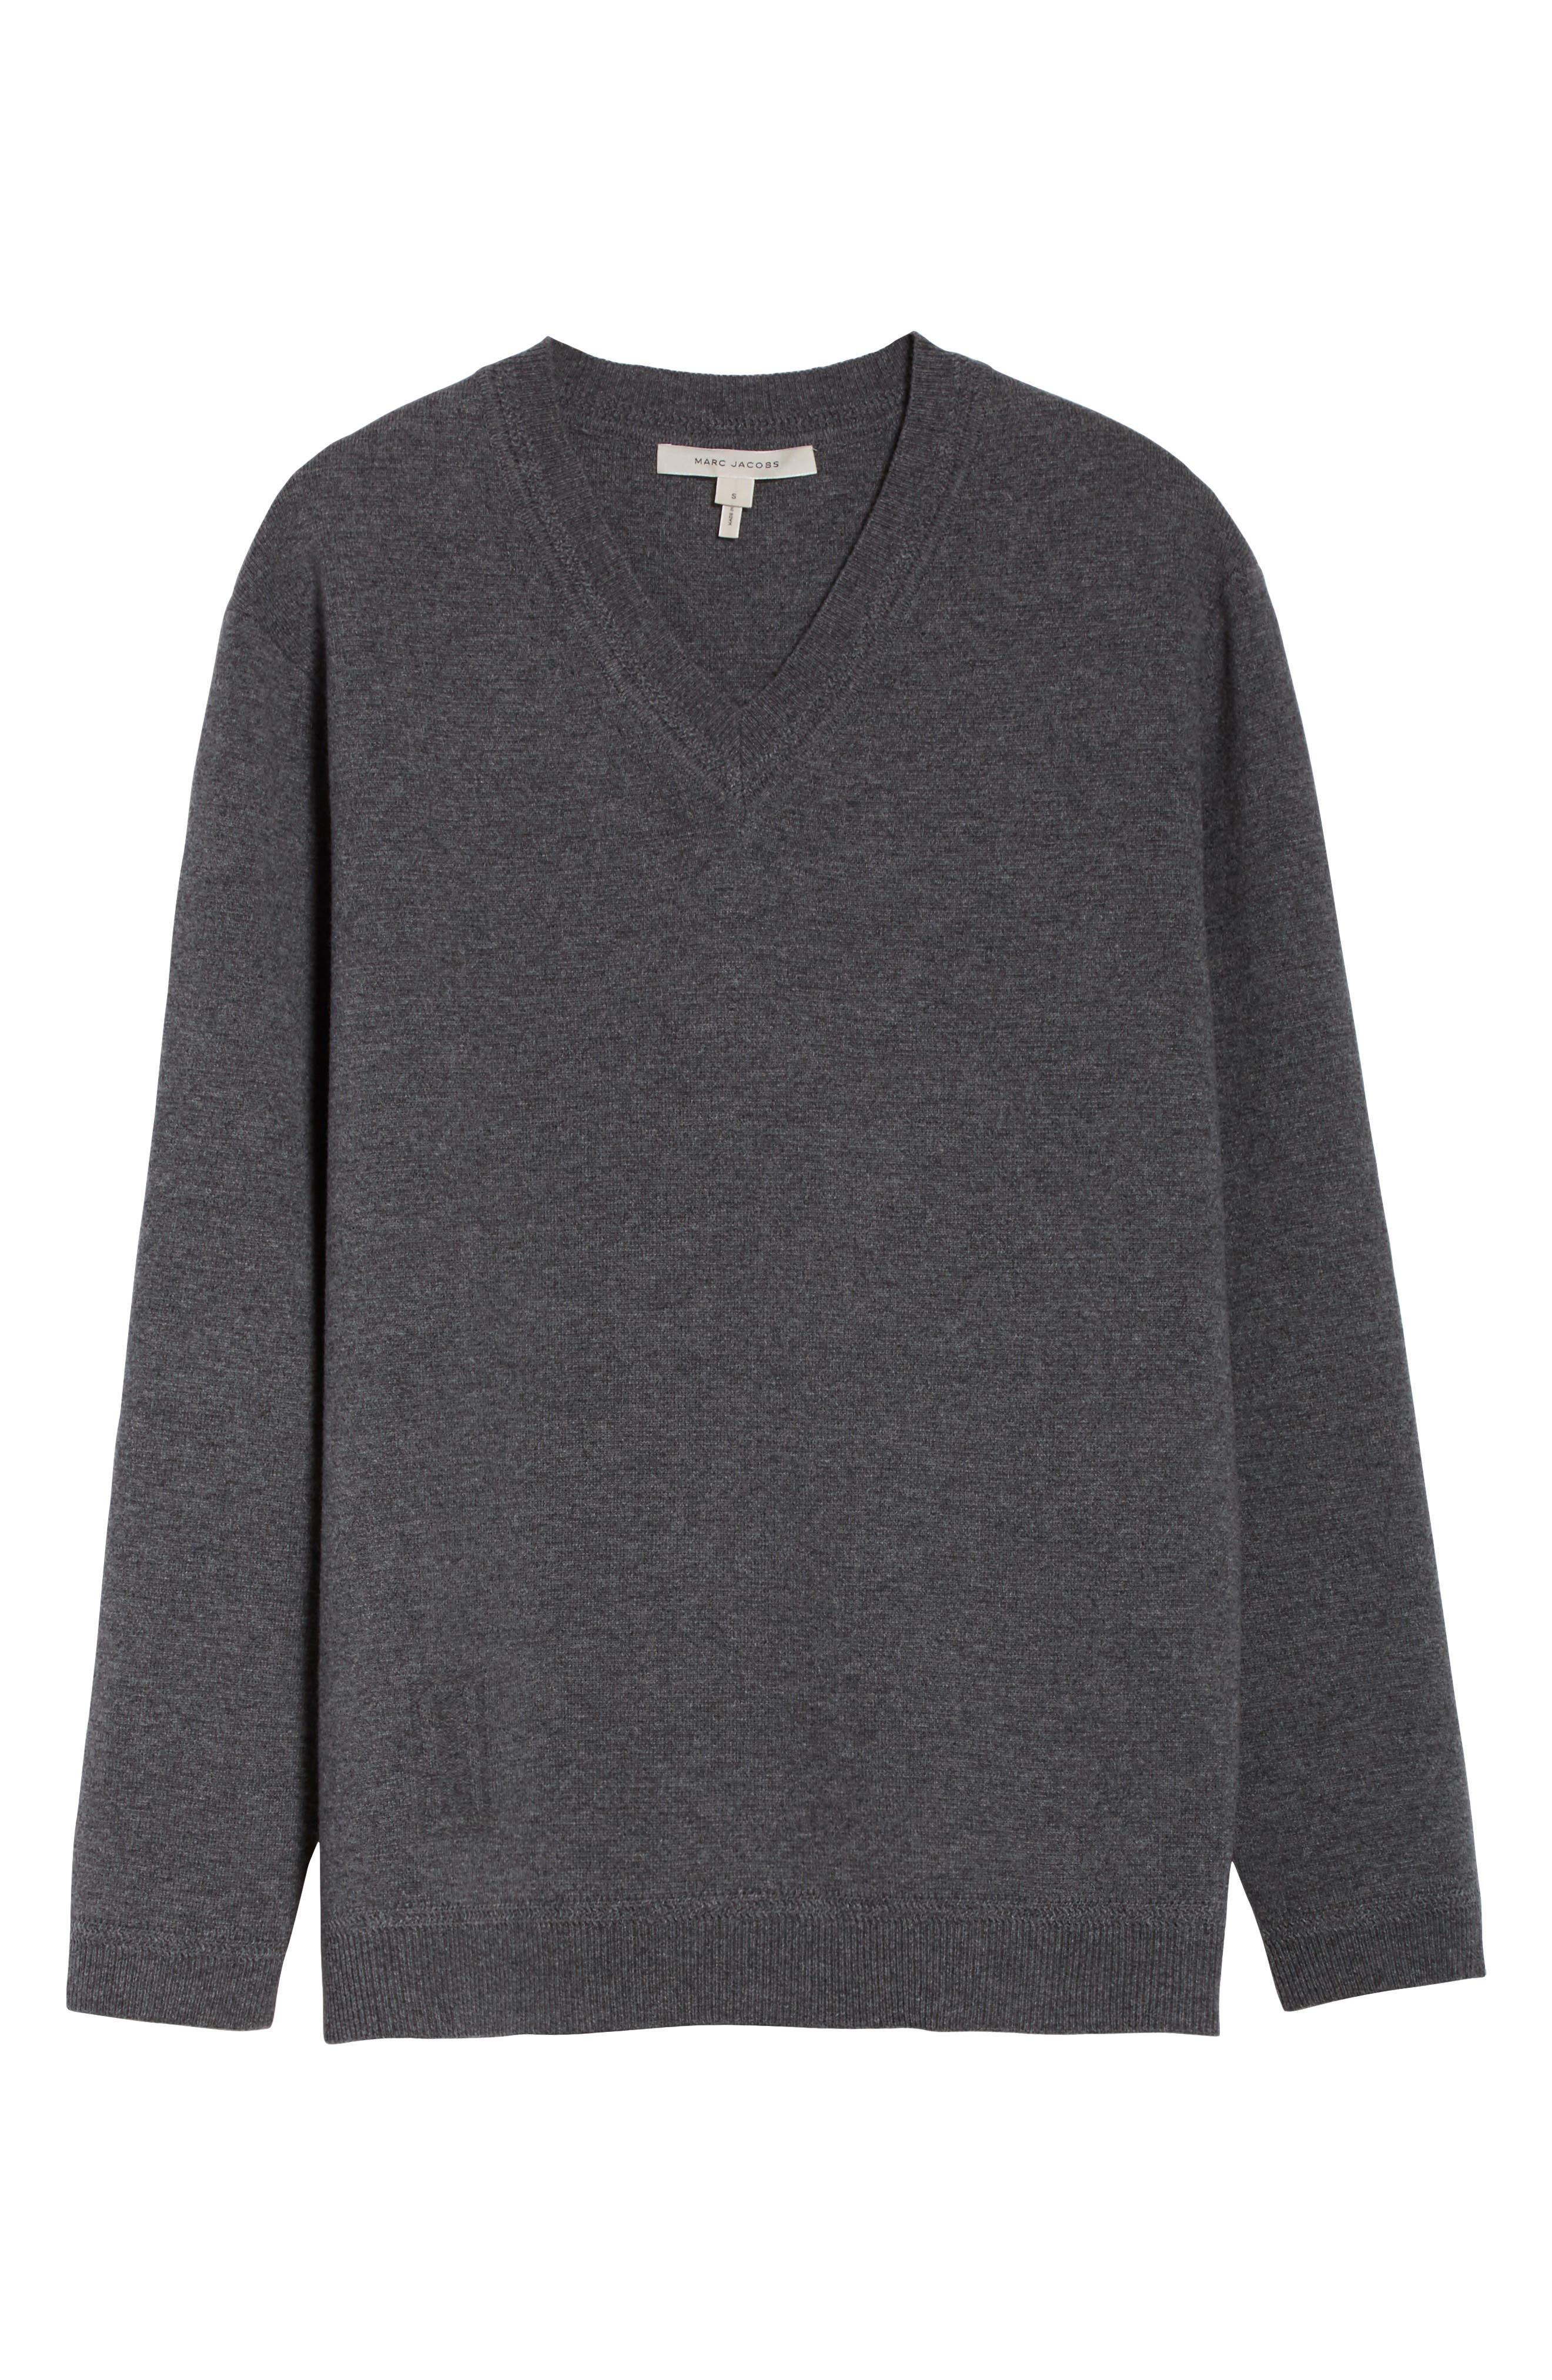 Alternate Image 4  - MARC JACOBS Wool & Cashmere Sweater